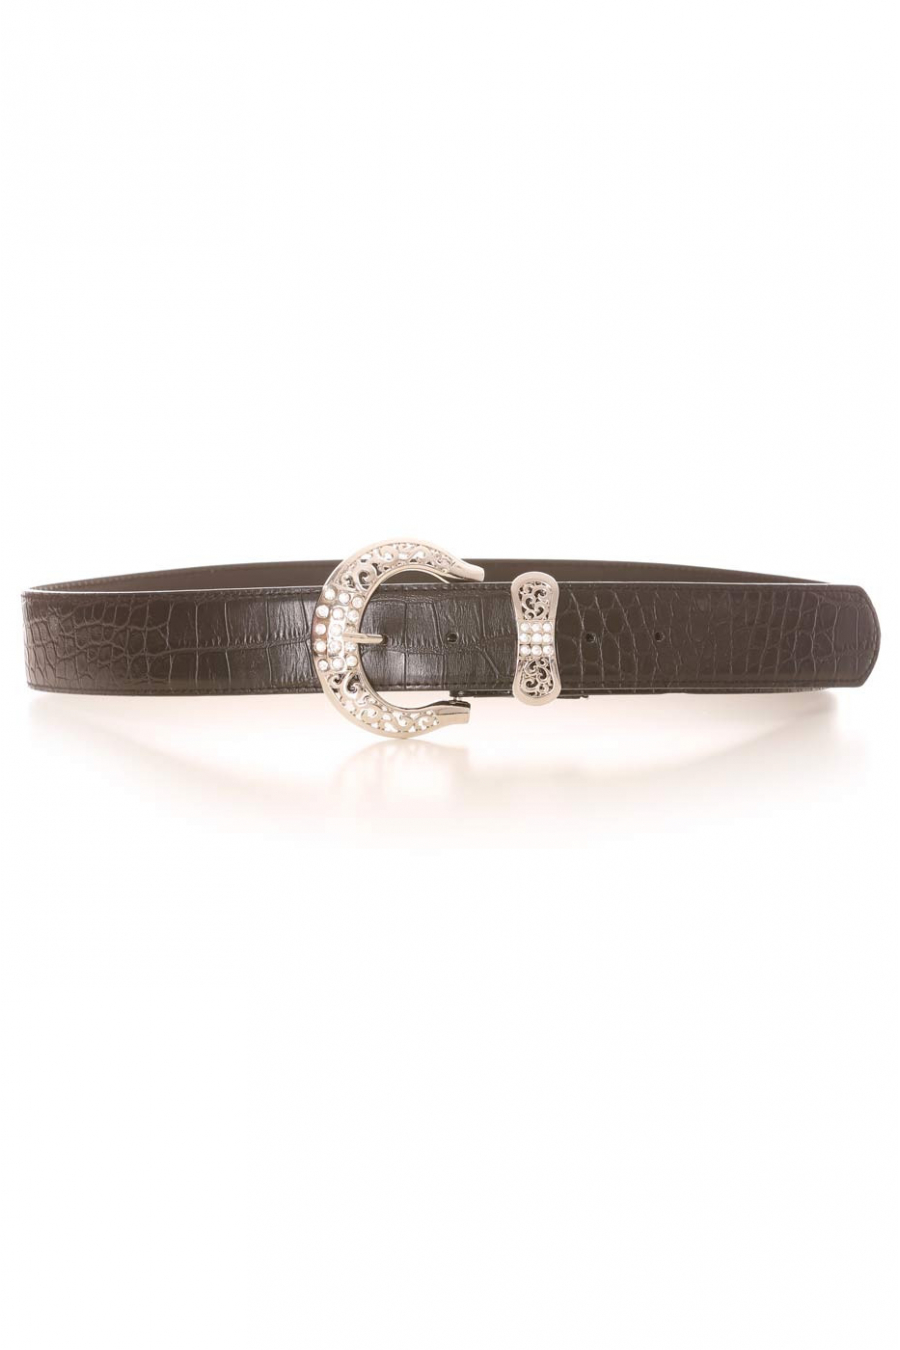 Black croc-effect belt with silver rhinestone buckle and bow-shaped loop. PVC accessory